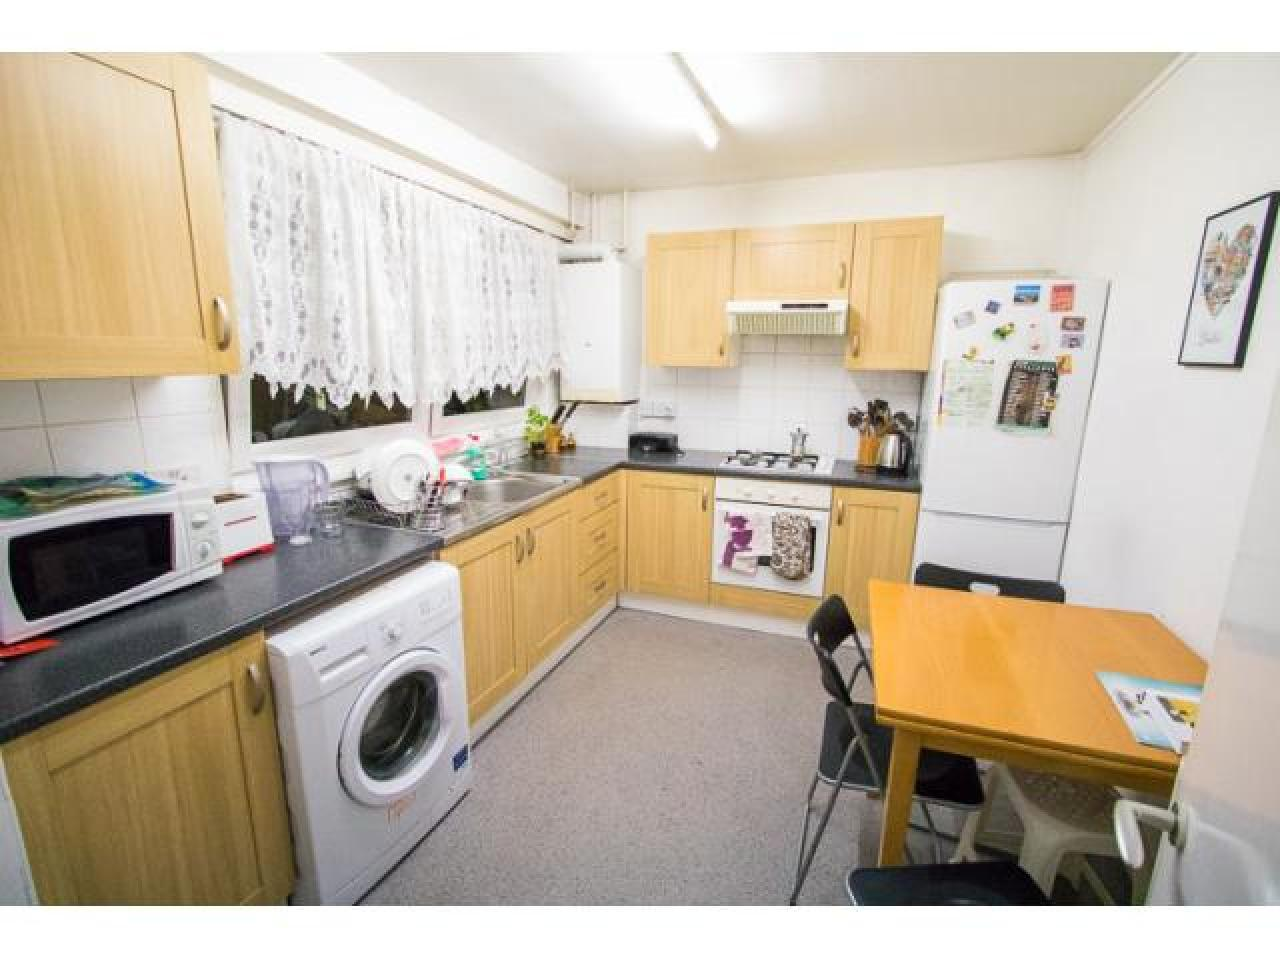 Double комната в аренду, £580/month, all bills included, Bethnal Green, London, ladies only - 3